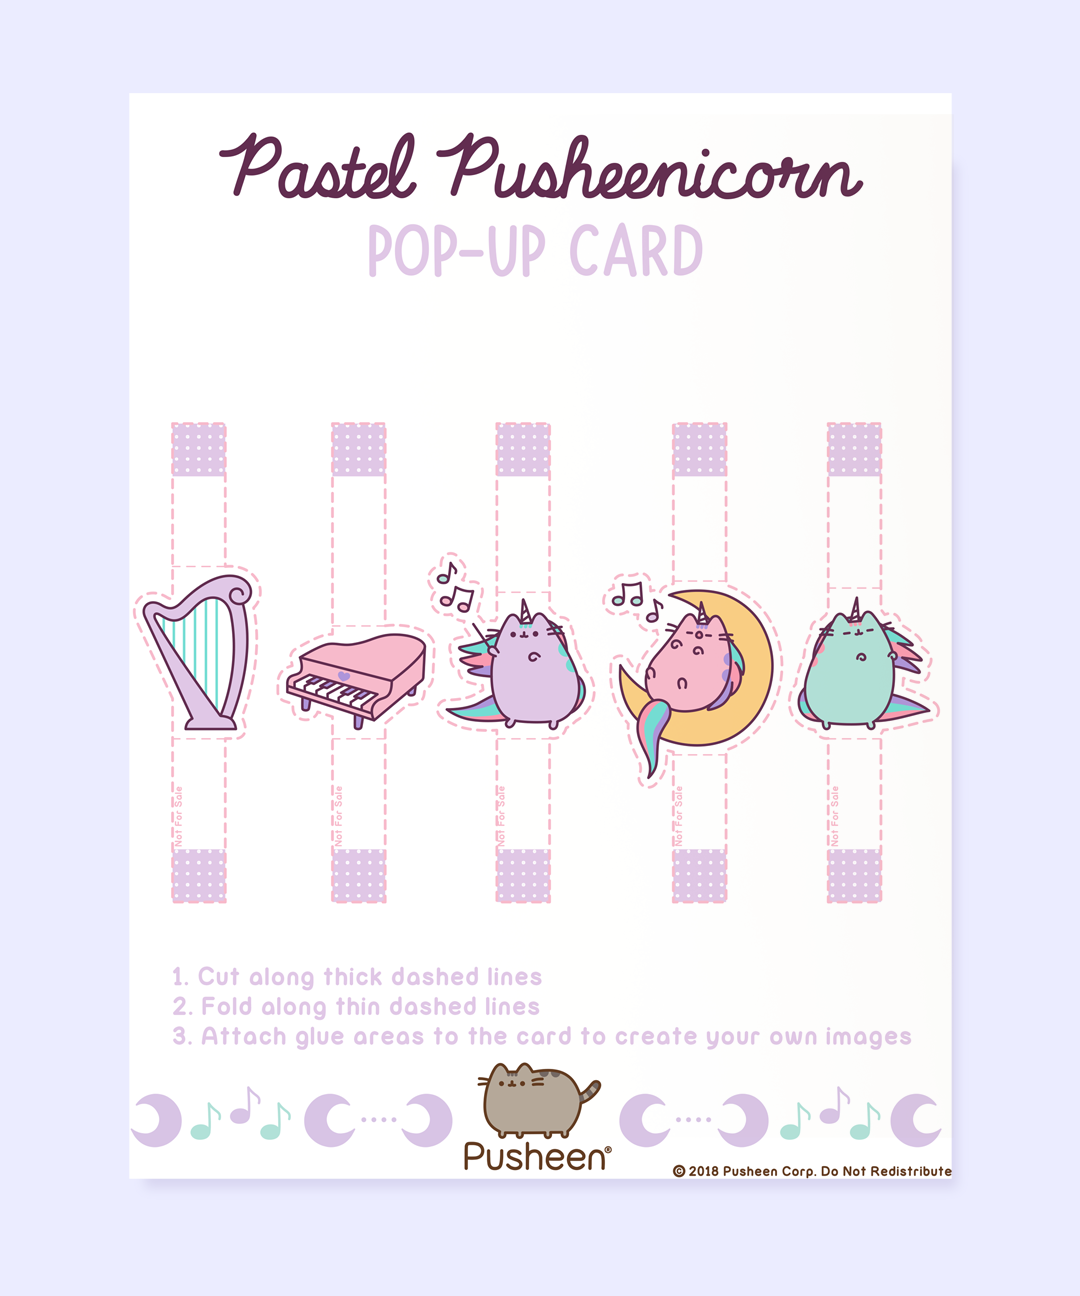 Printable Pastel Pusheenicorn Pop-Up Cards